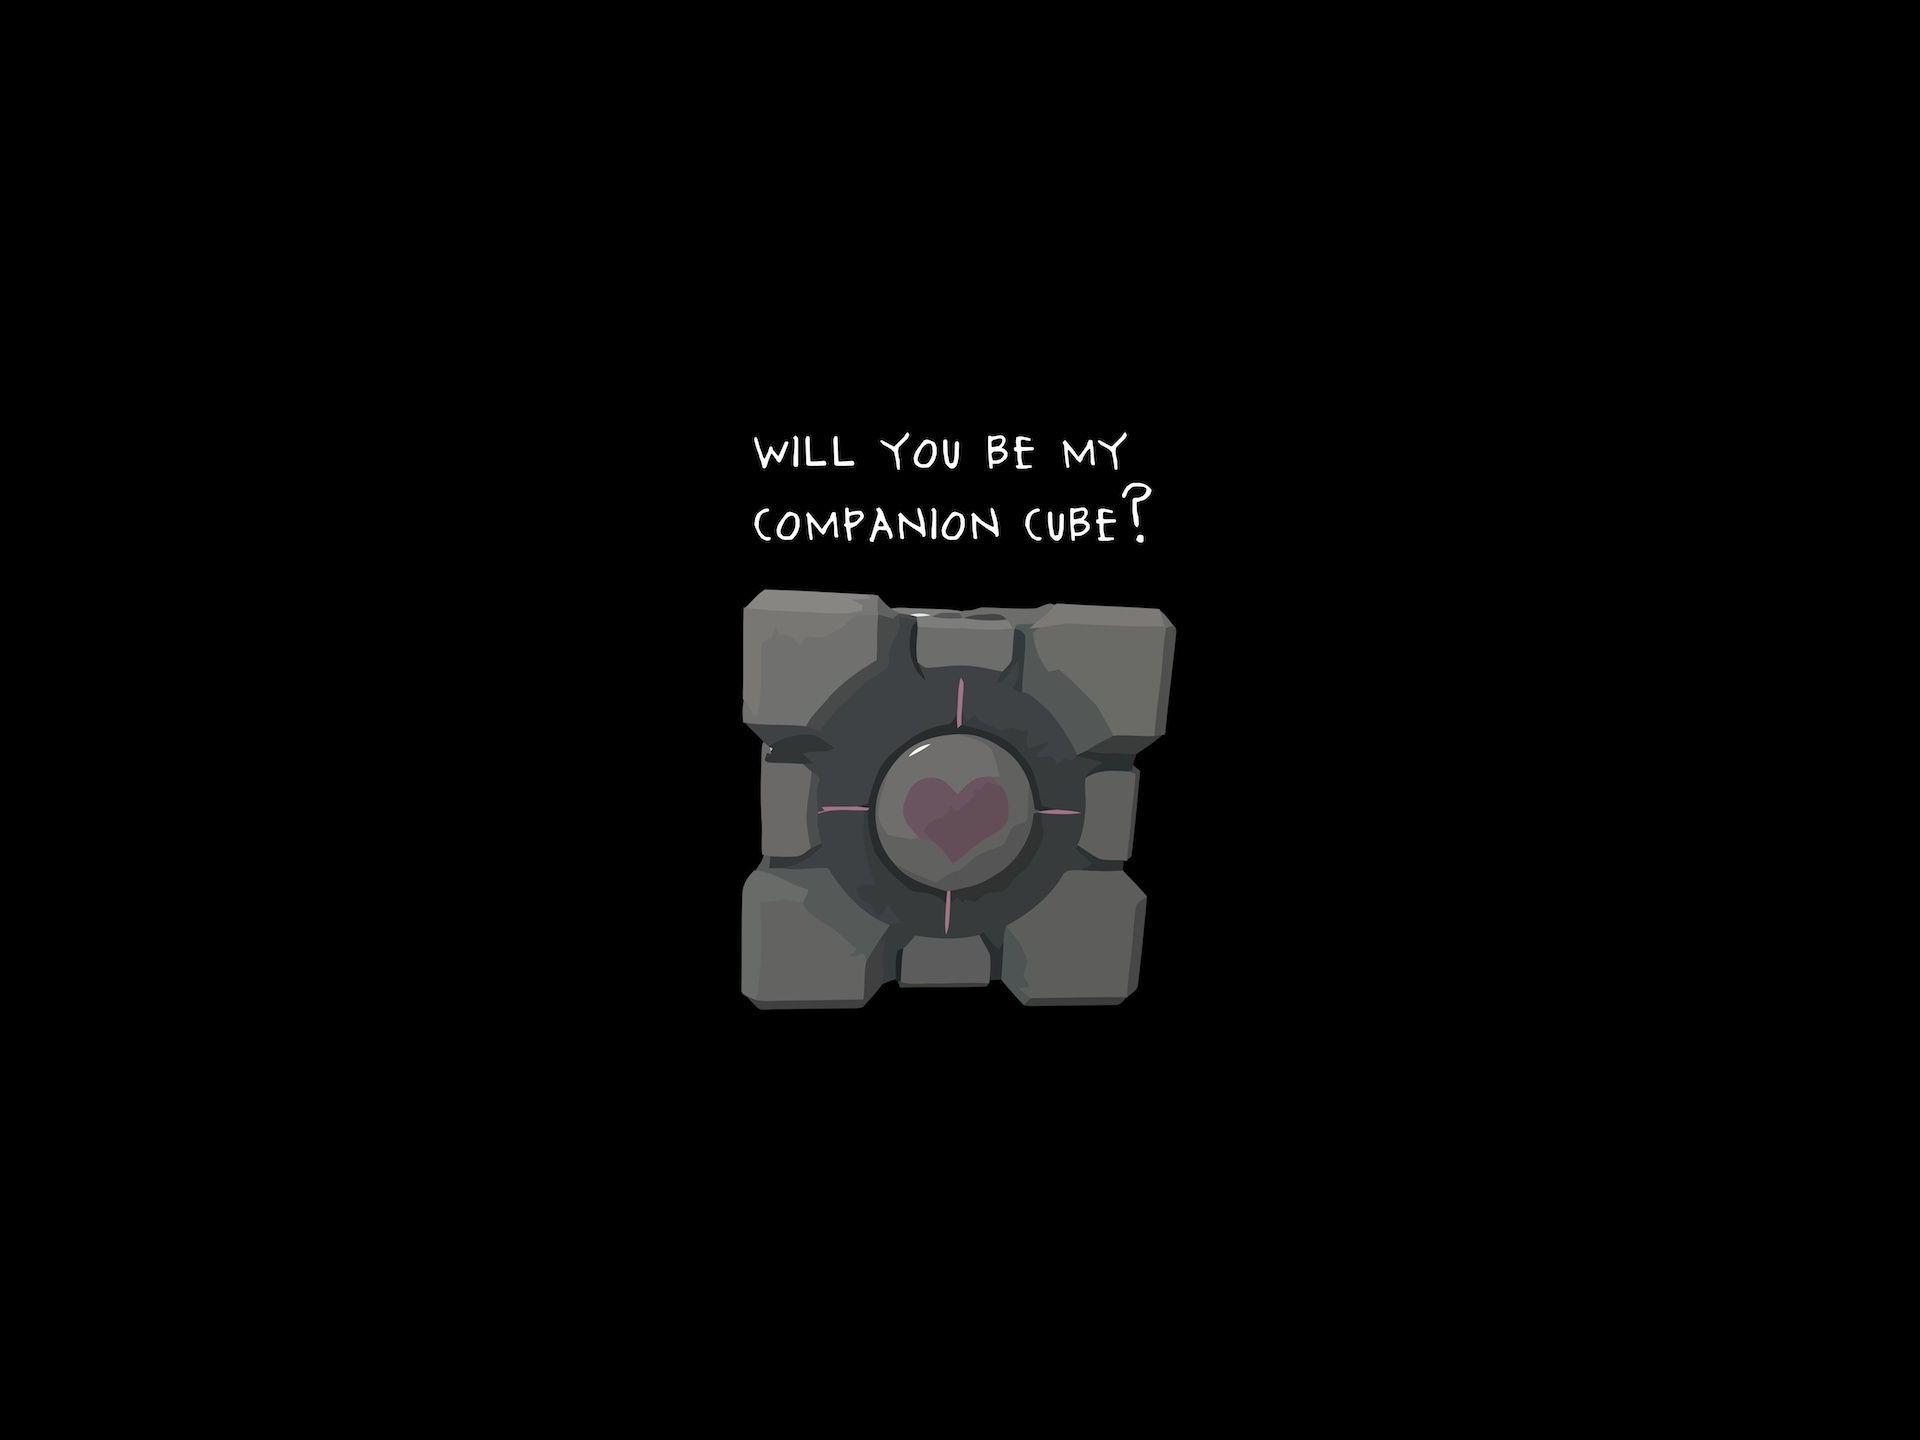 Companion Cube HD Wallpaper